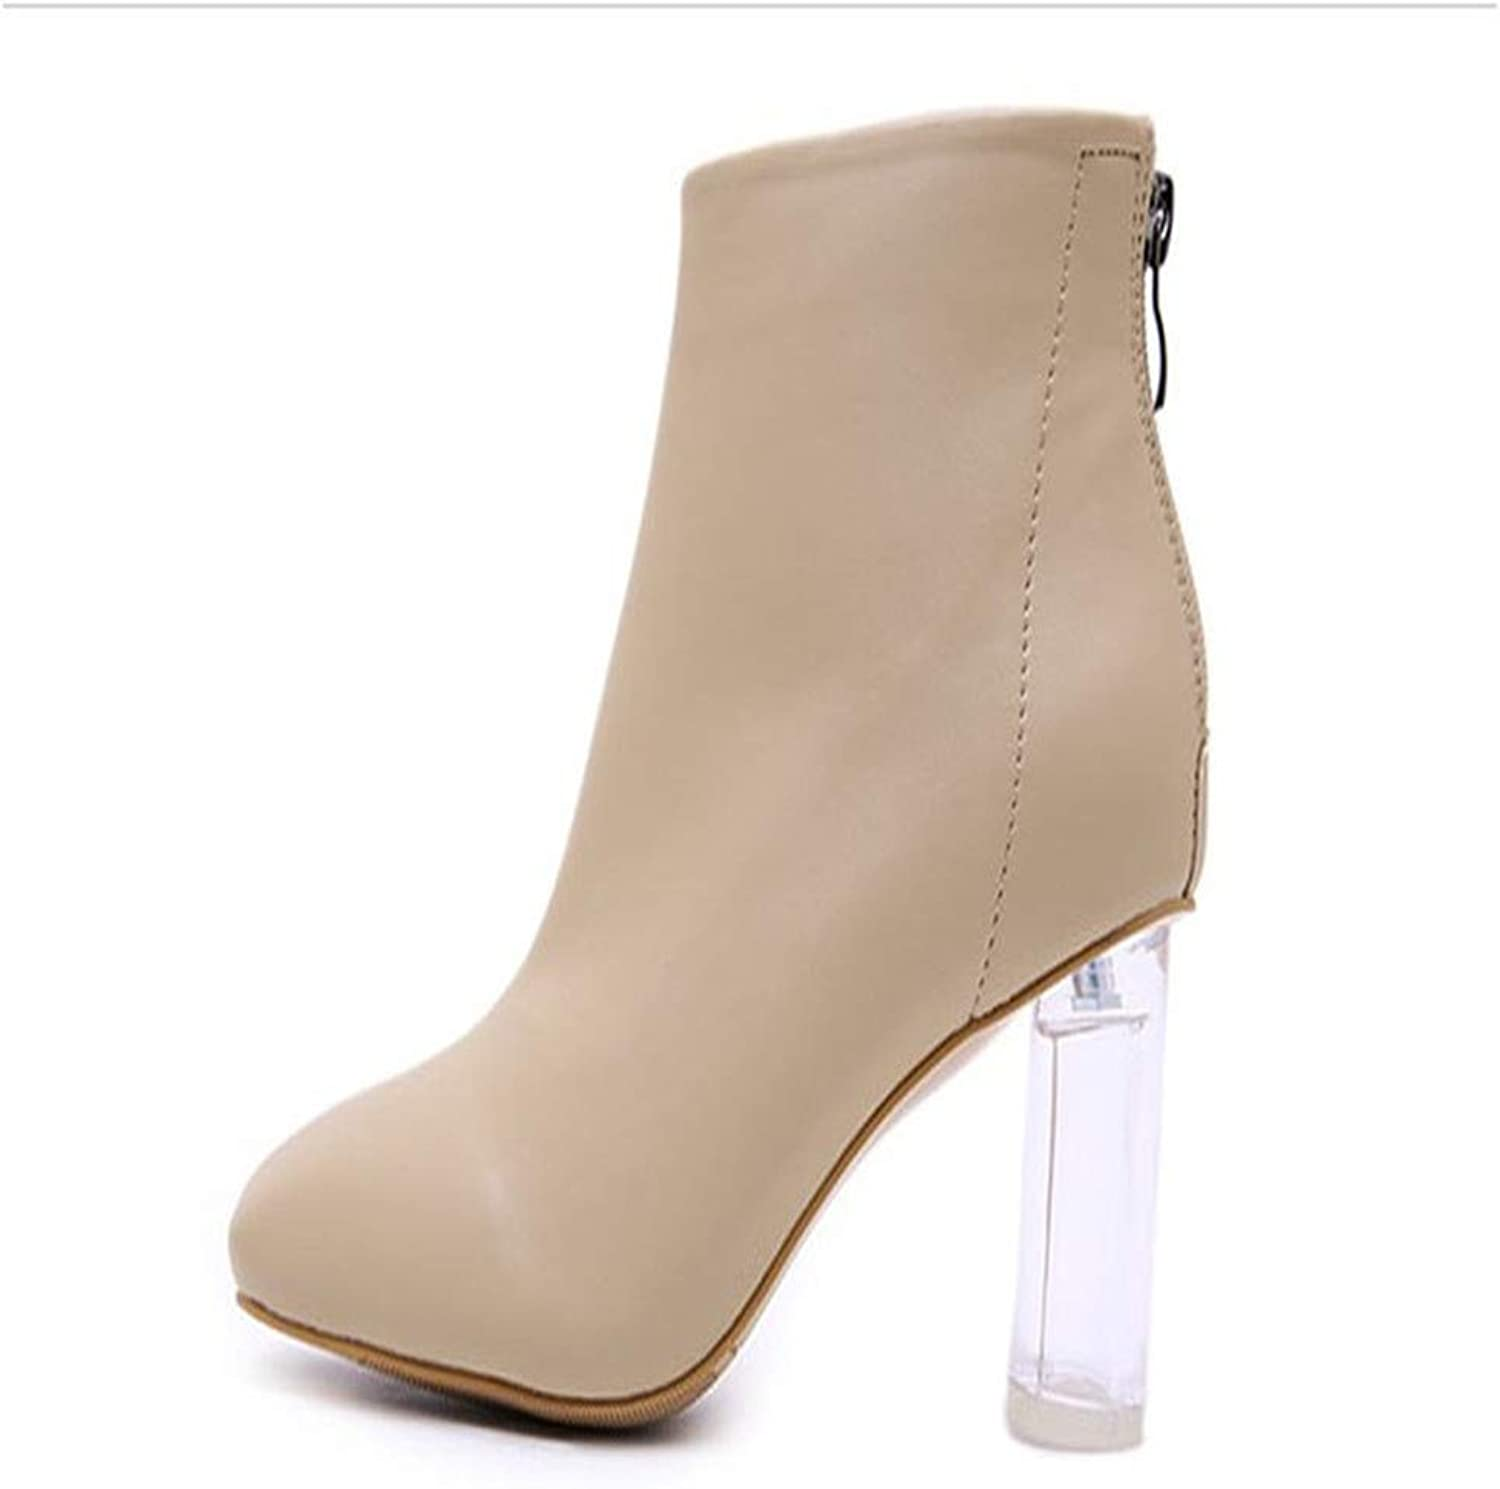 Winter Ladies Crystal Root in The Tube Women's Boots Temperament Thick with Casual Sexy Large Size PU Leather Warm Textile Lining